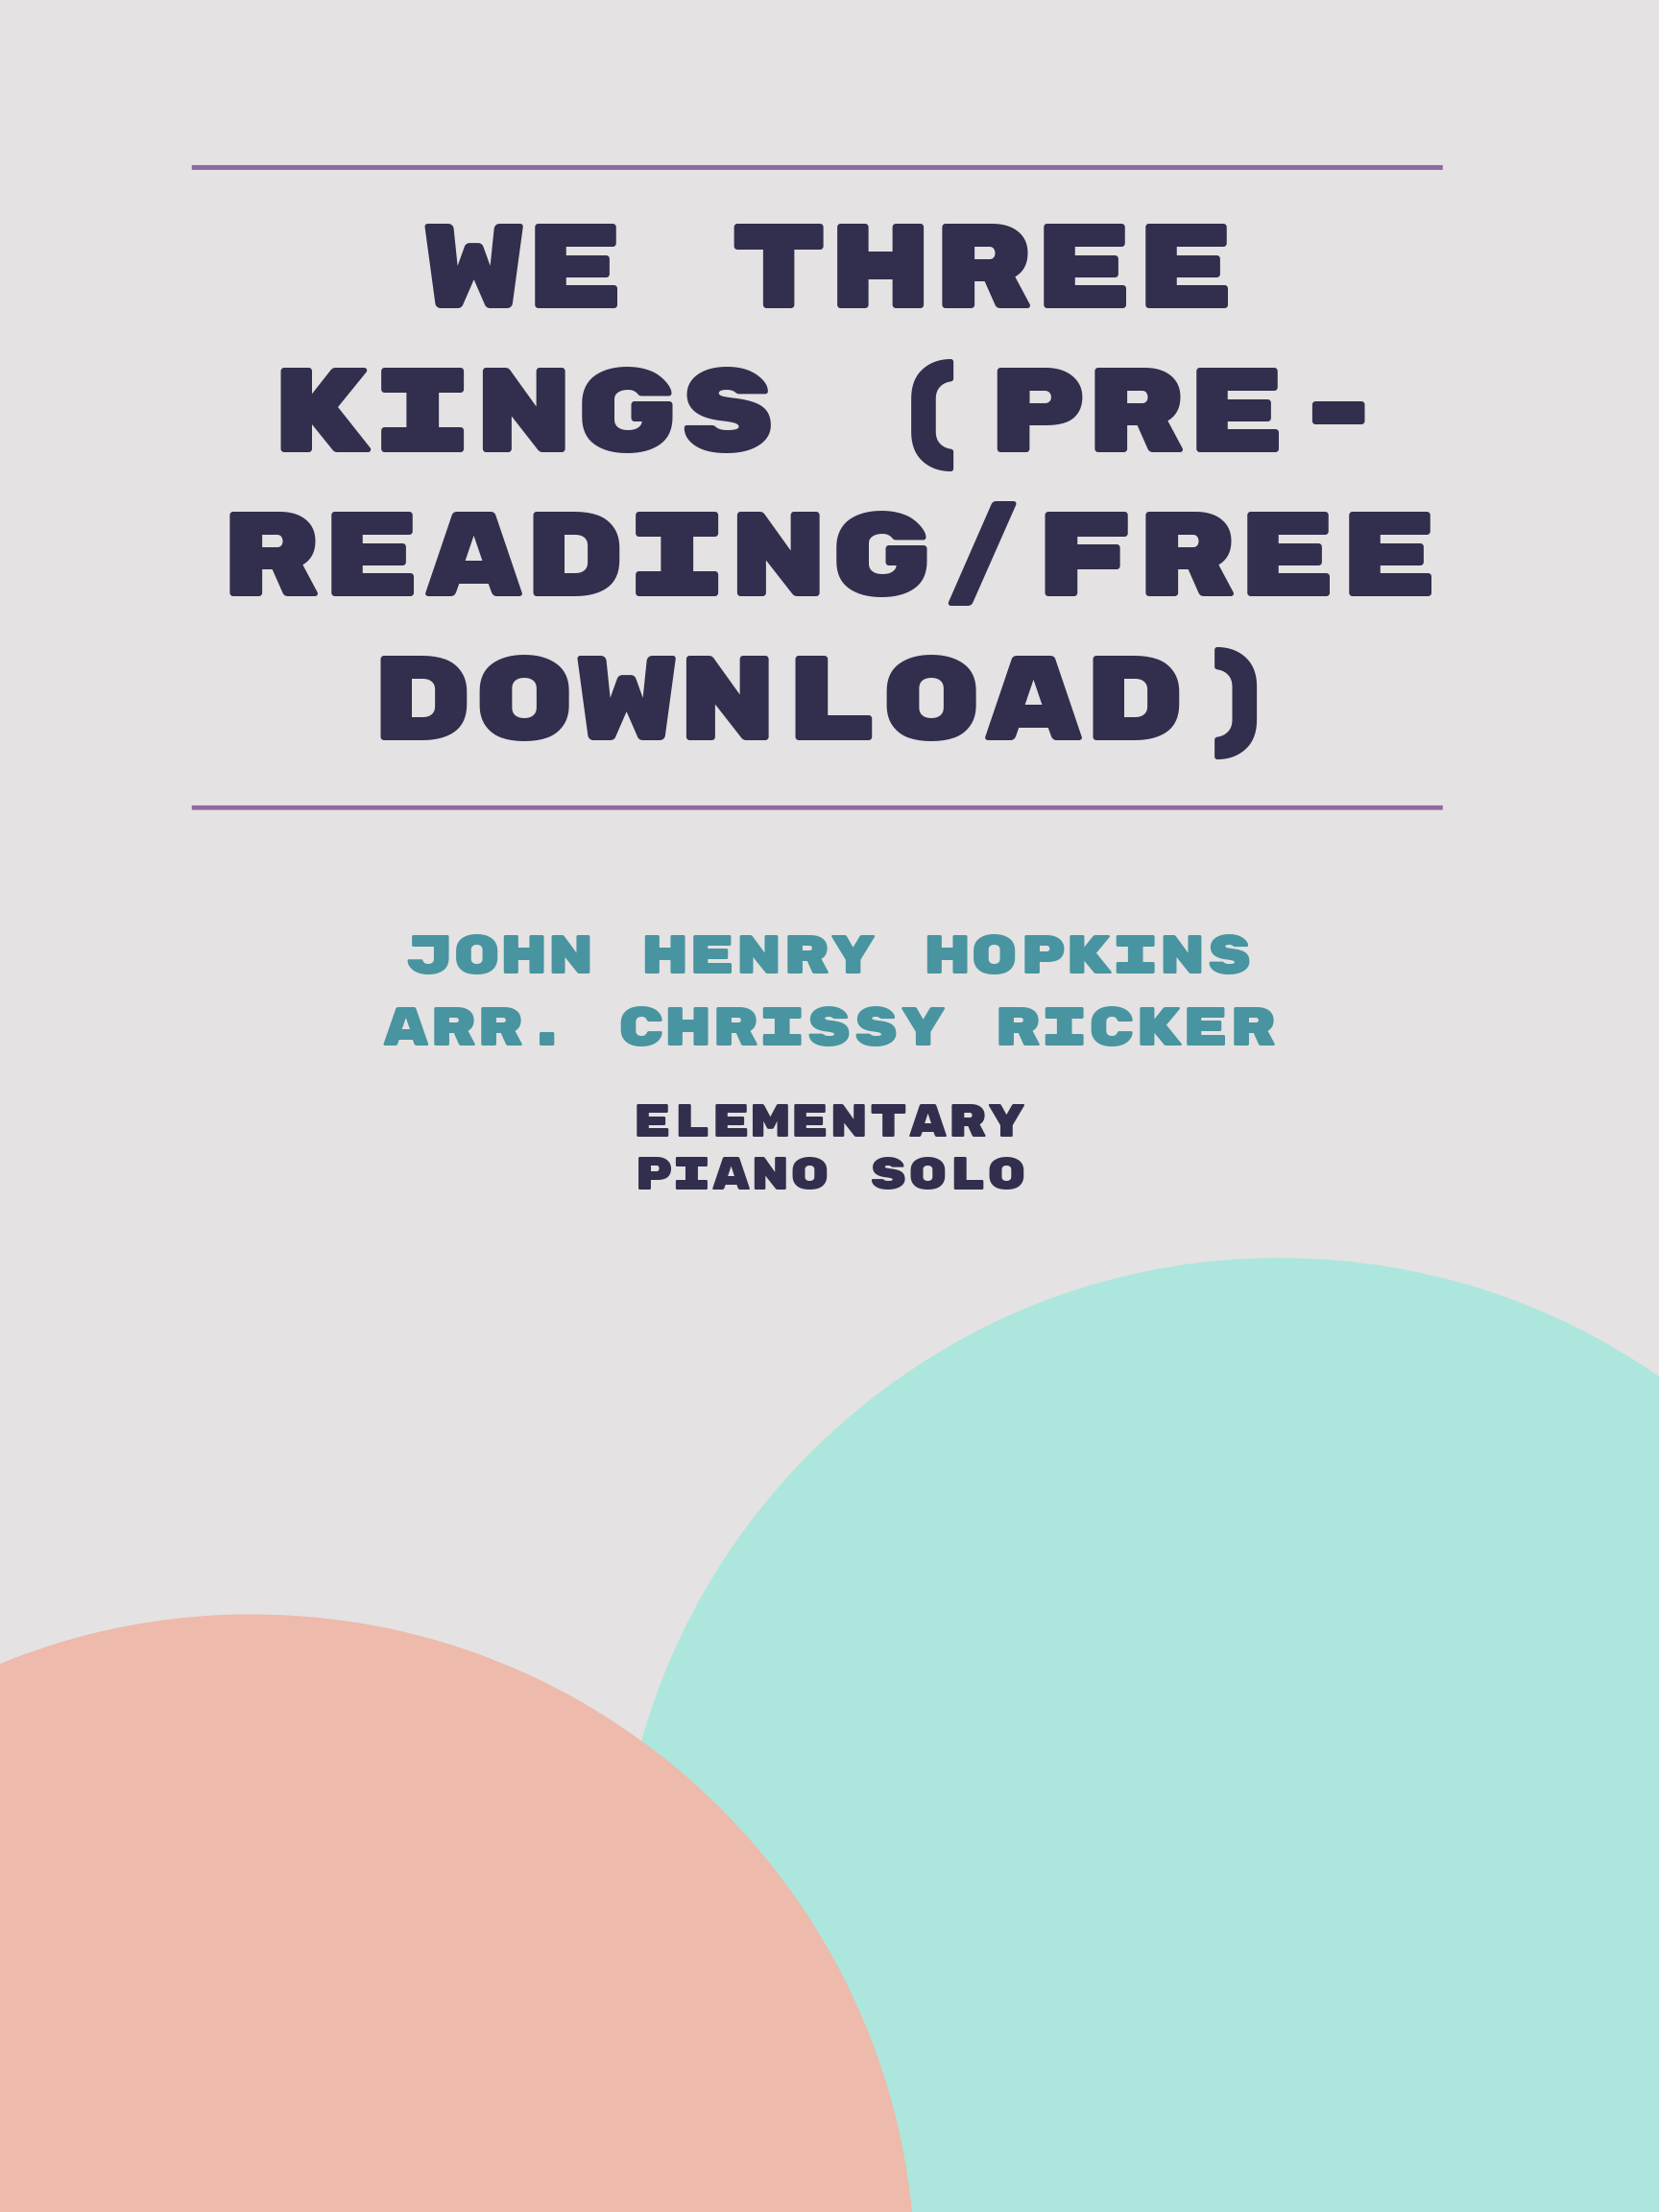 We Three Kings (pre-reading/free download) by John Henry Hopkins